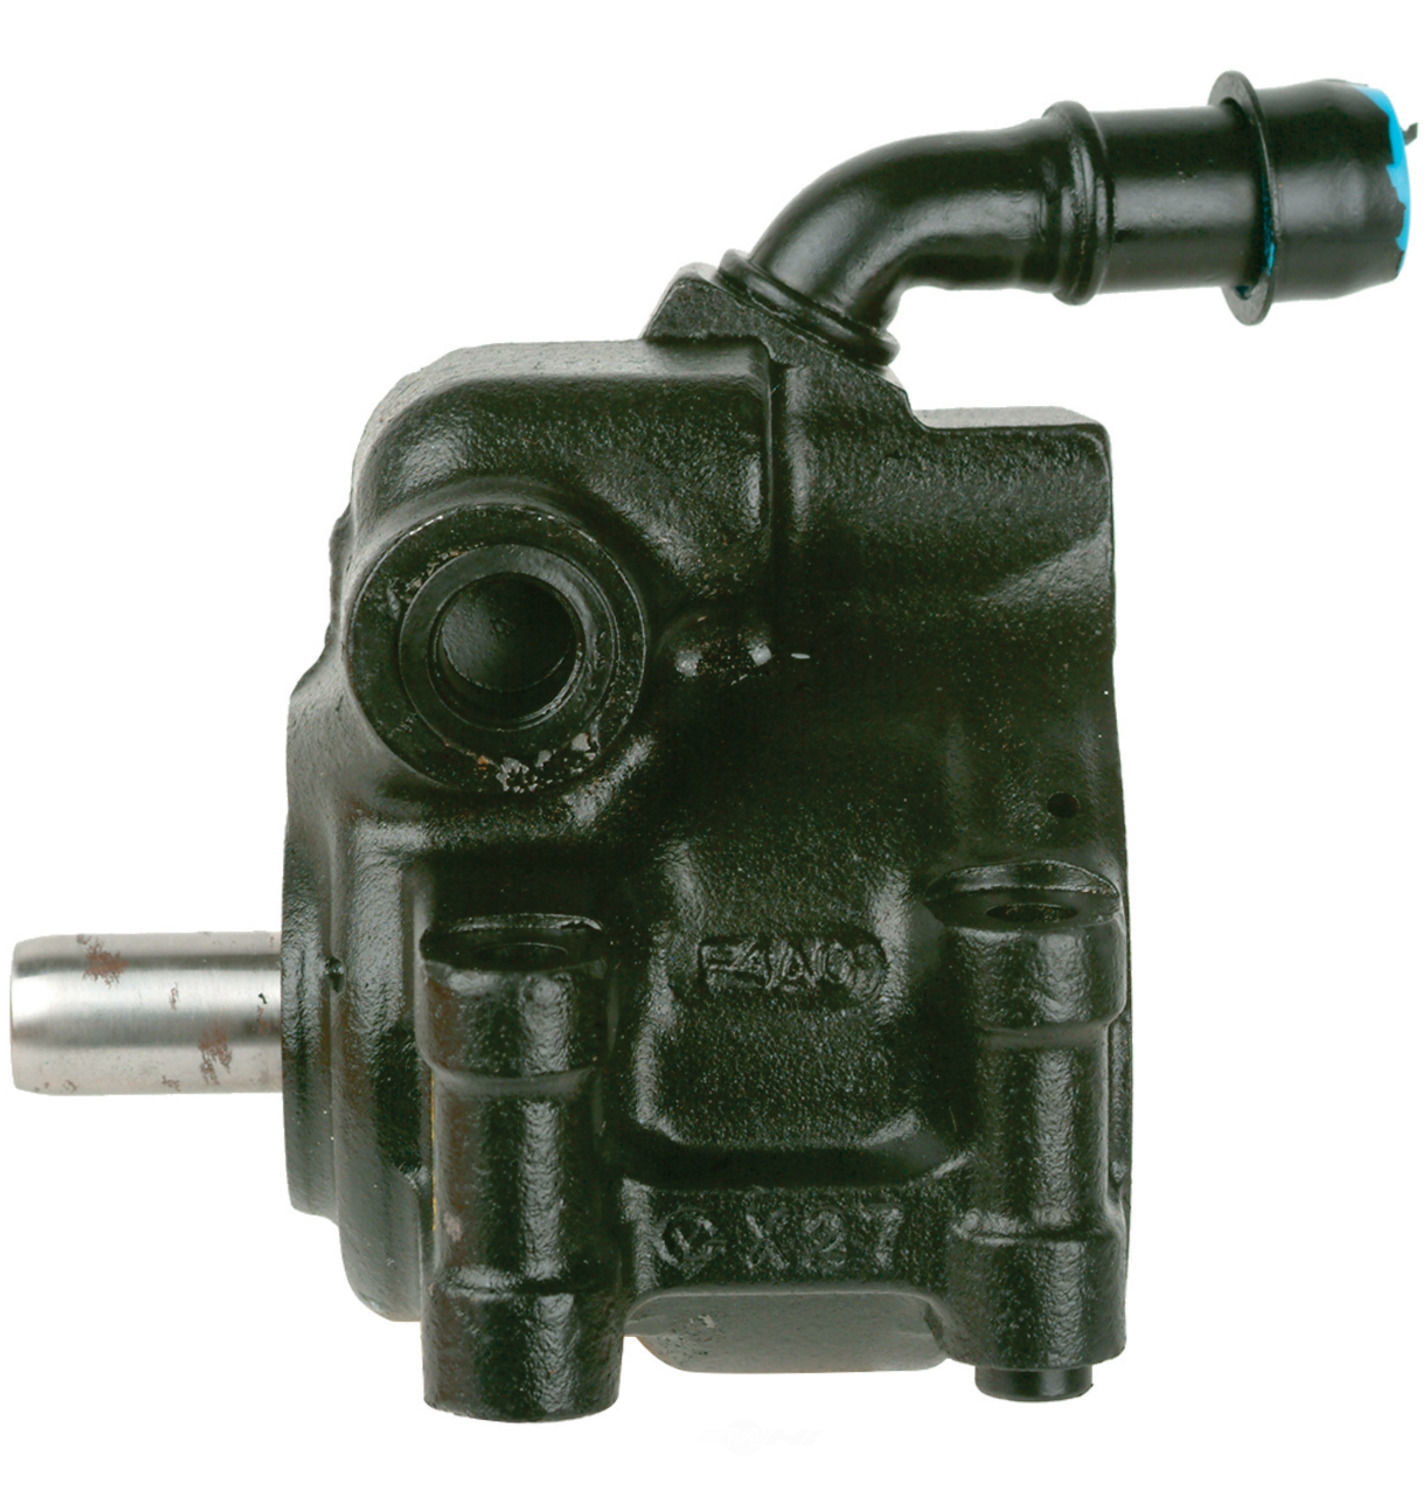 Ford F 250 Super Duty 2000 Remanufactured: Power Steering Pump Cardone 20-311 Reman Fits 03-04 Ford F